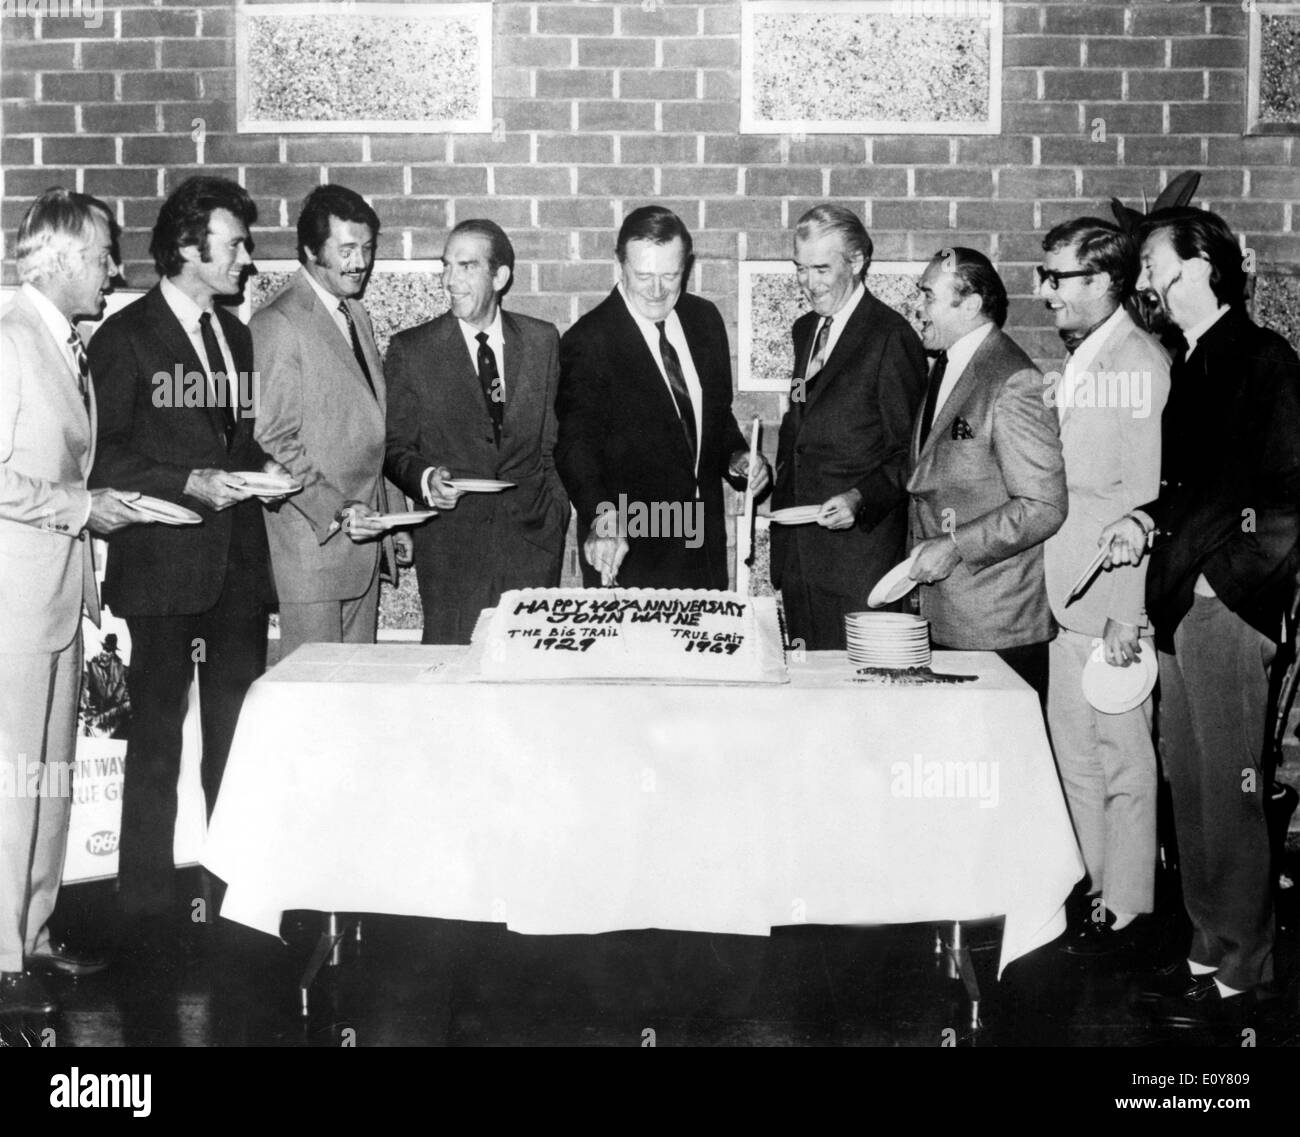 Actor John Wayne cuts his cake surrounded by friends - Stock Image